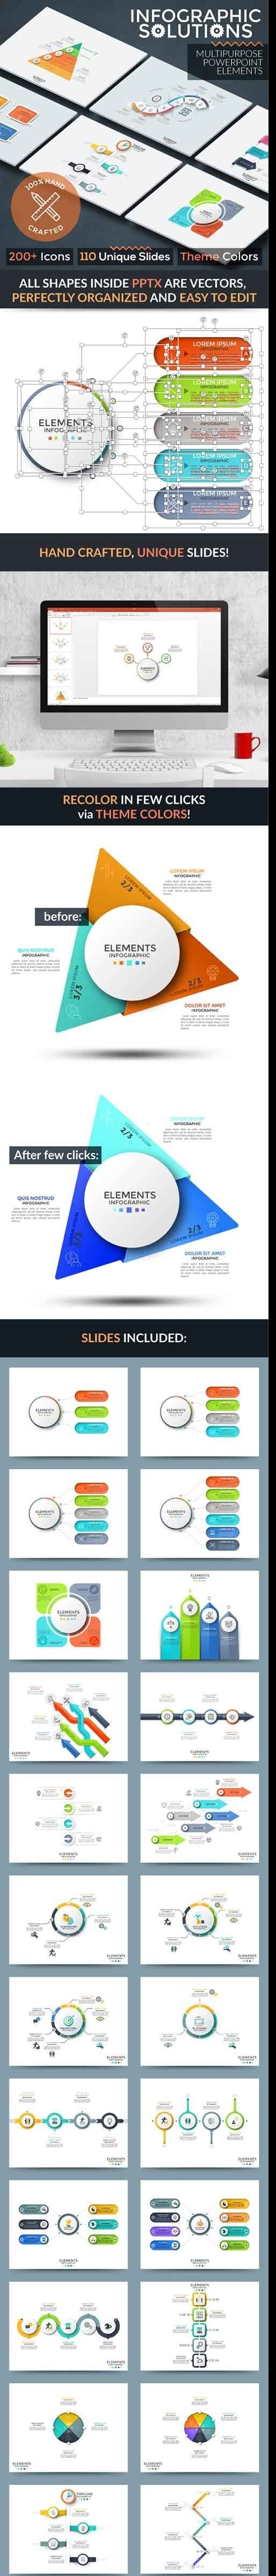 powerpoint-ppt - Infographic Solutions. Powerpoint Template 22087401